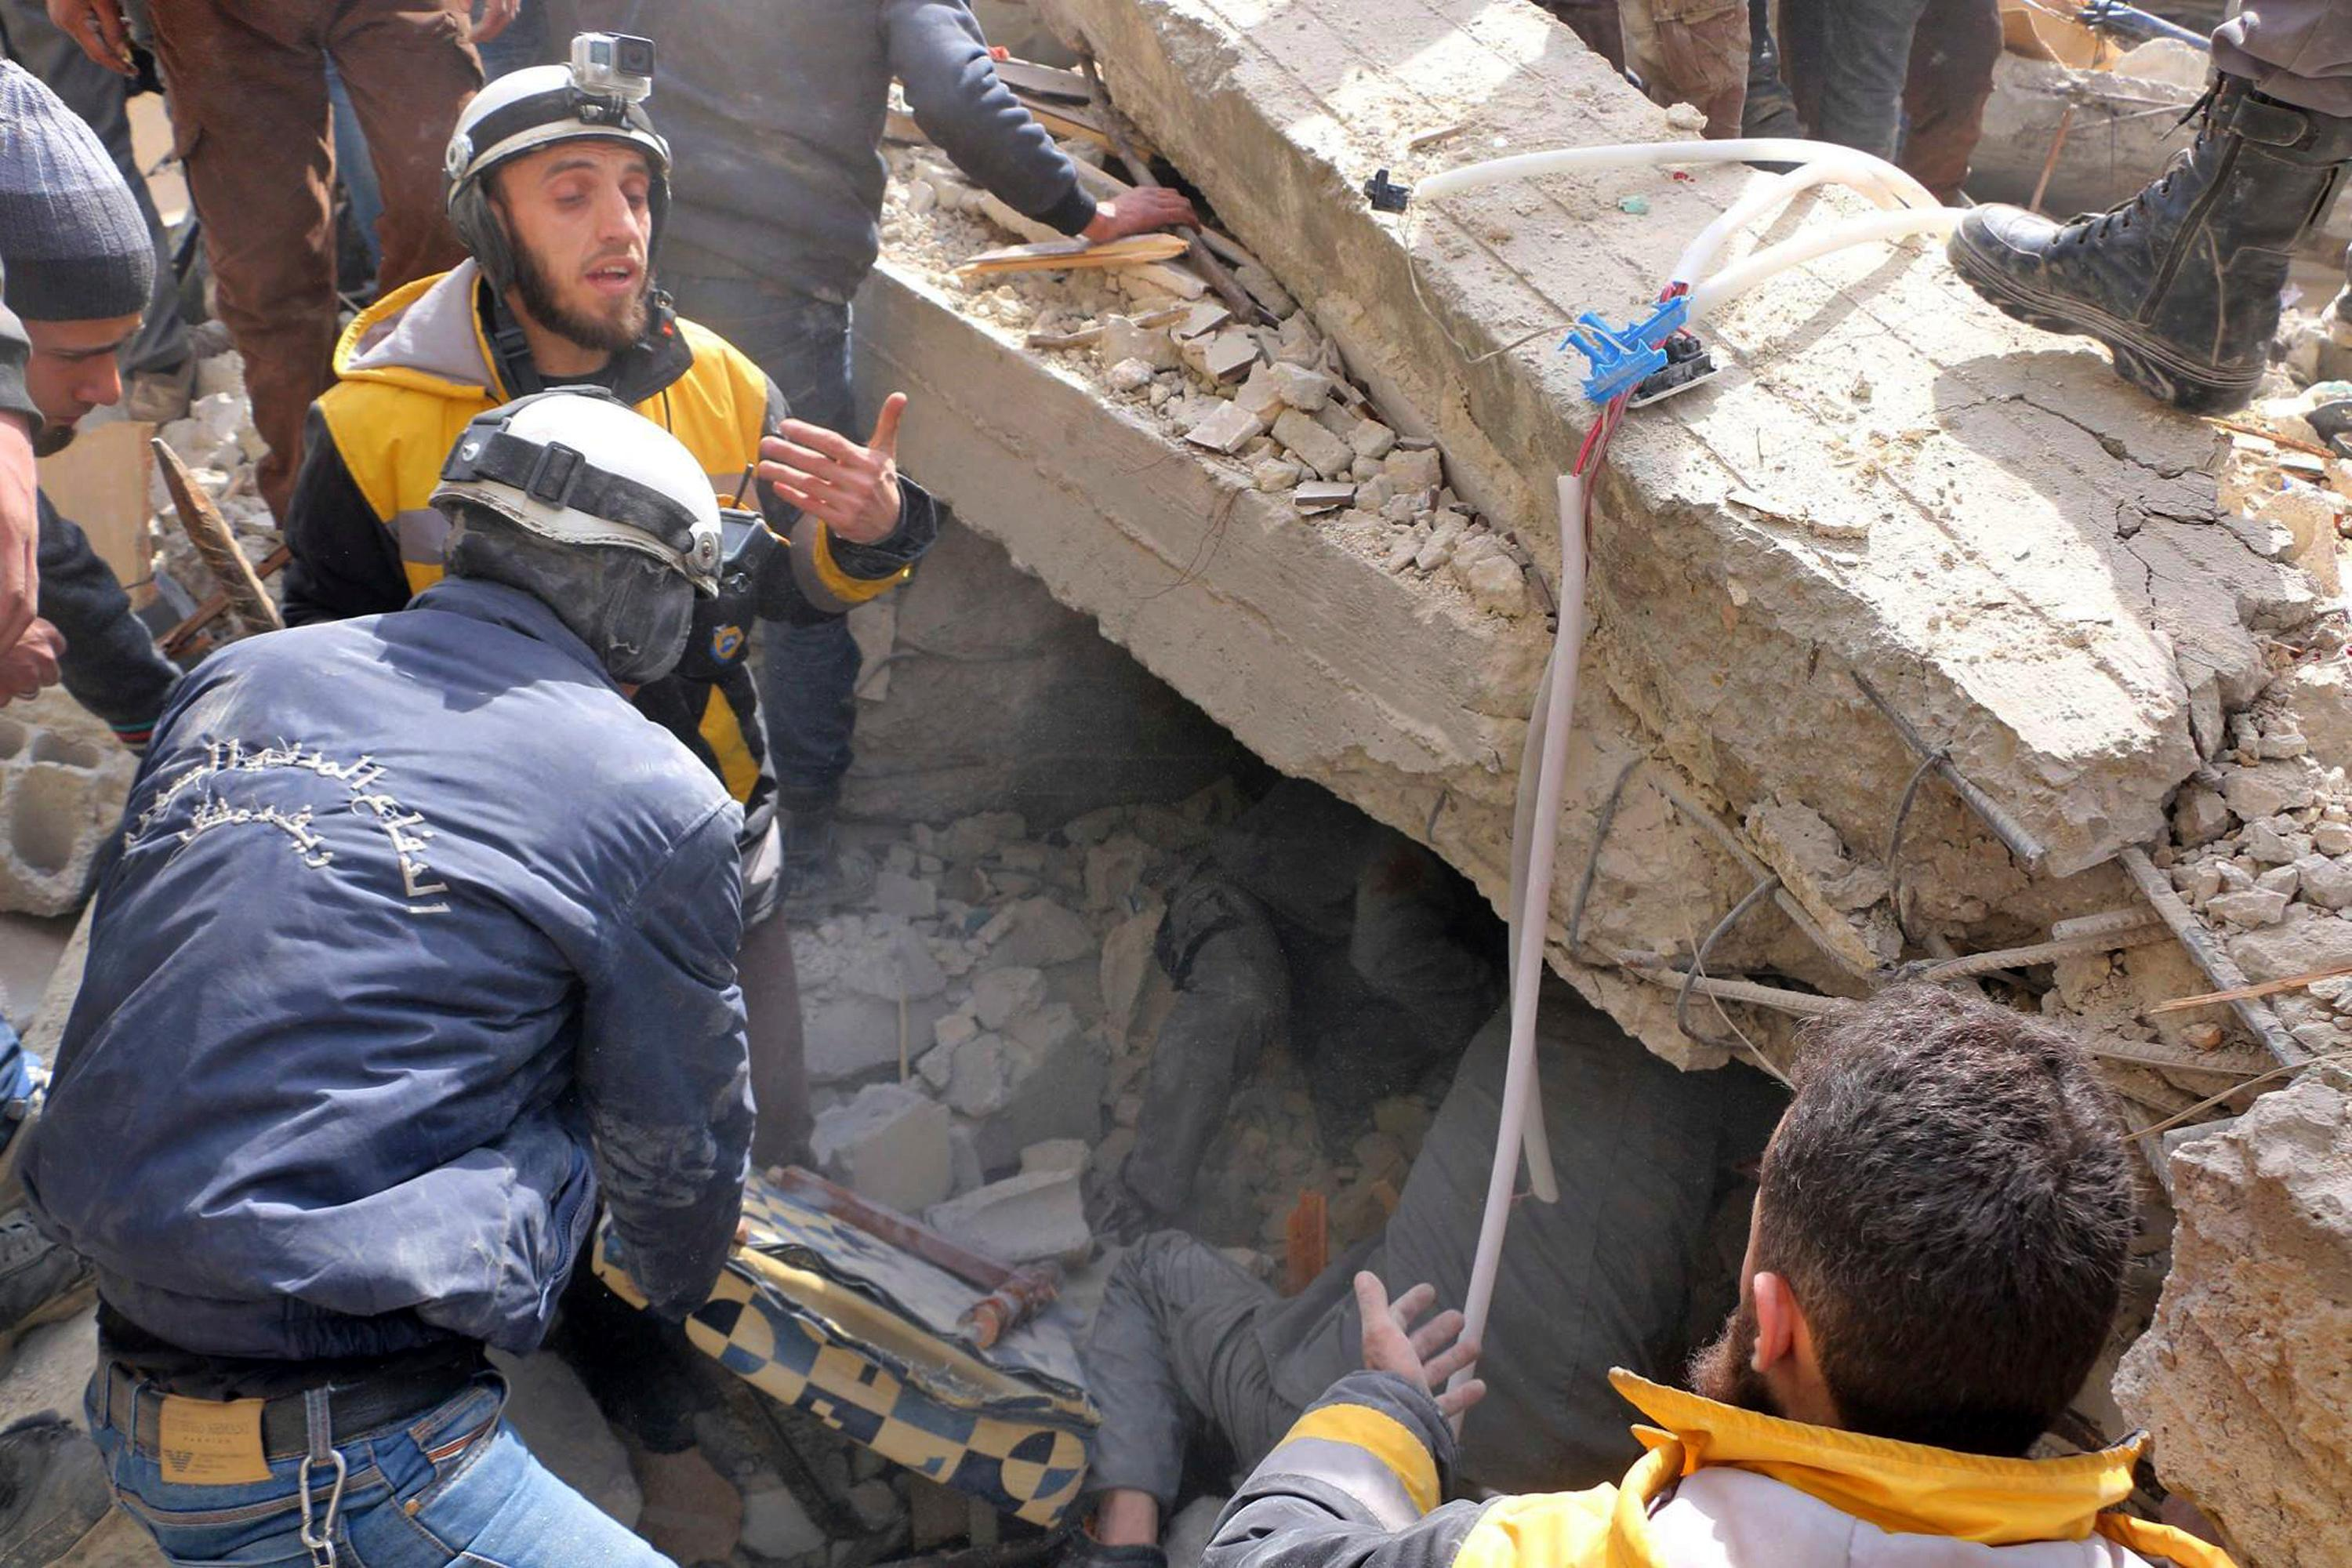 This photo provided by the Syrian Civil Defense group known as the White Helmets, shows Civil Defense workers digging for survivors underneath a damaged building after airstrikes hit a rebel-held suburb near Damascus, Syria, Monday, Feb. 5, 2018. Syrian opposition activists said more than one dozen people killed in new airstrikes. (Syrian Civil Defense White Helmets via AP)